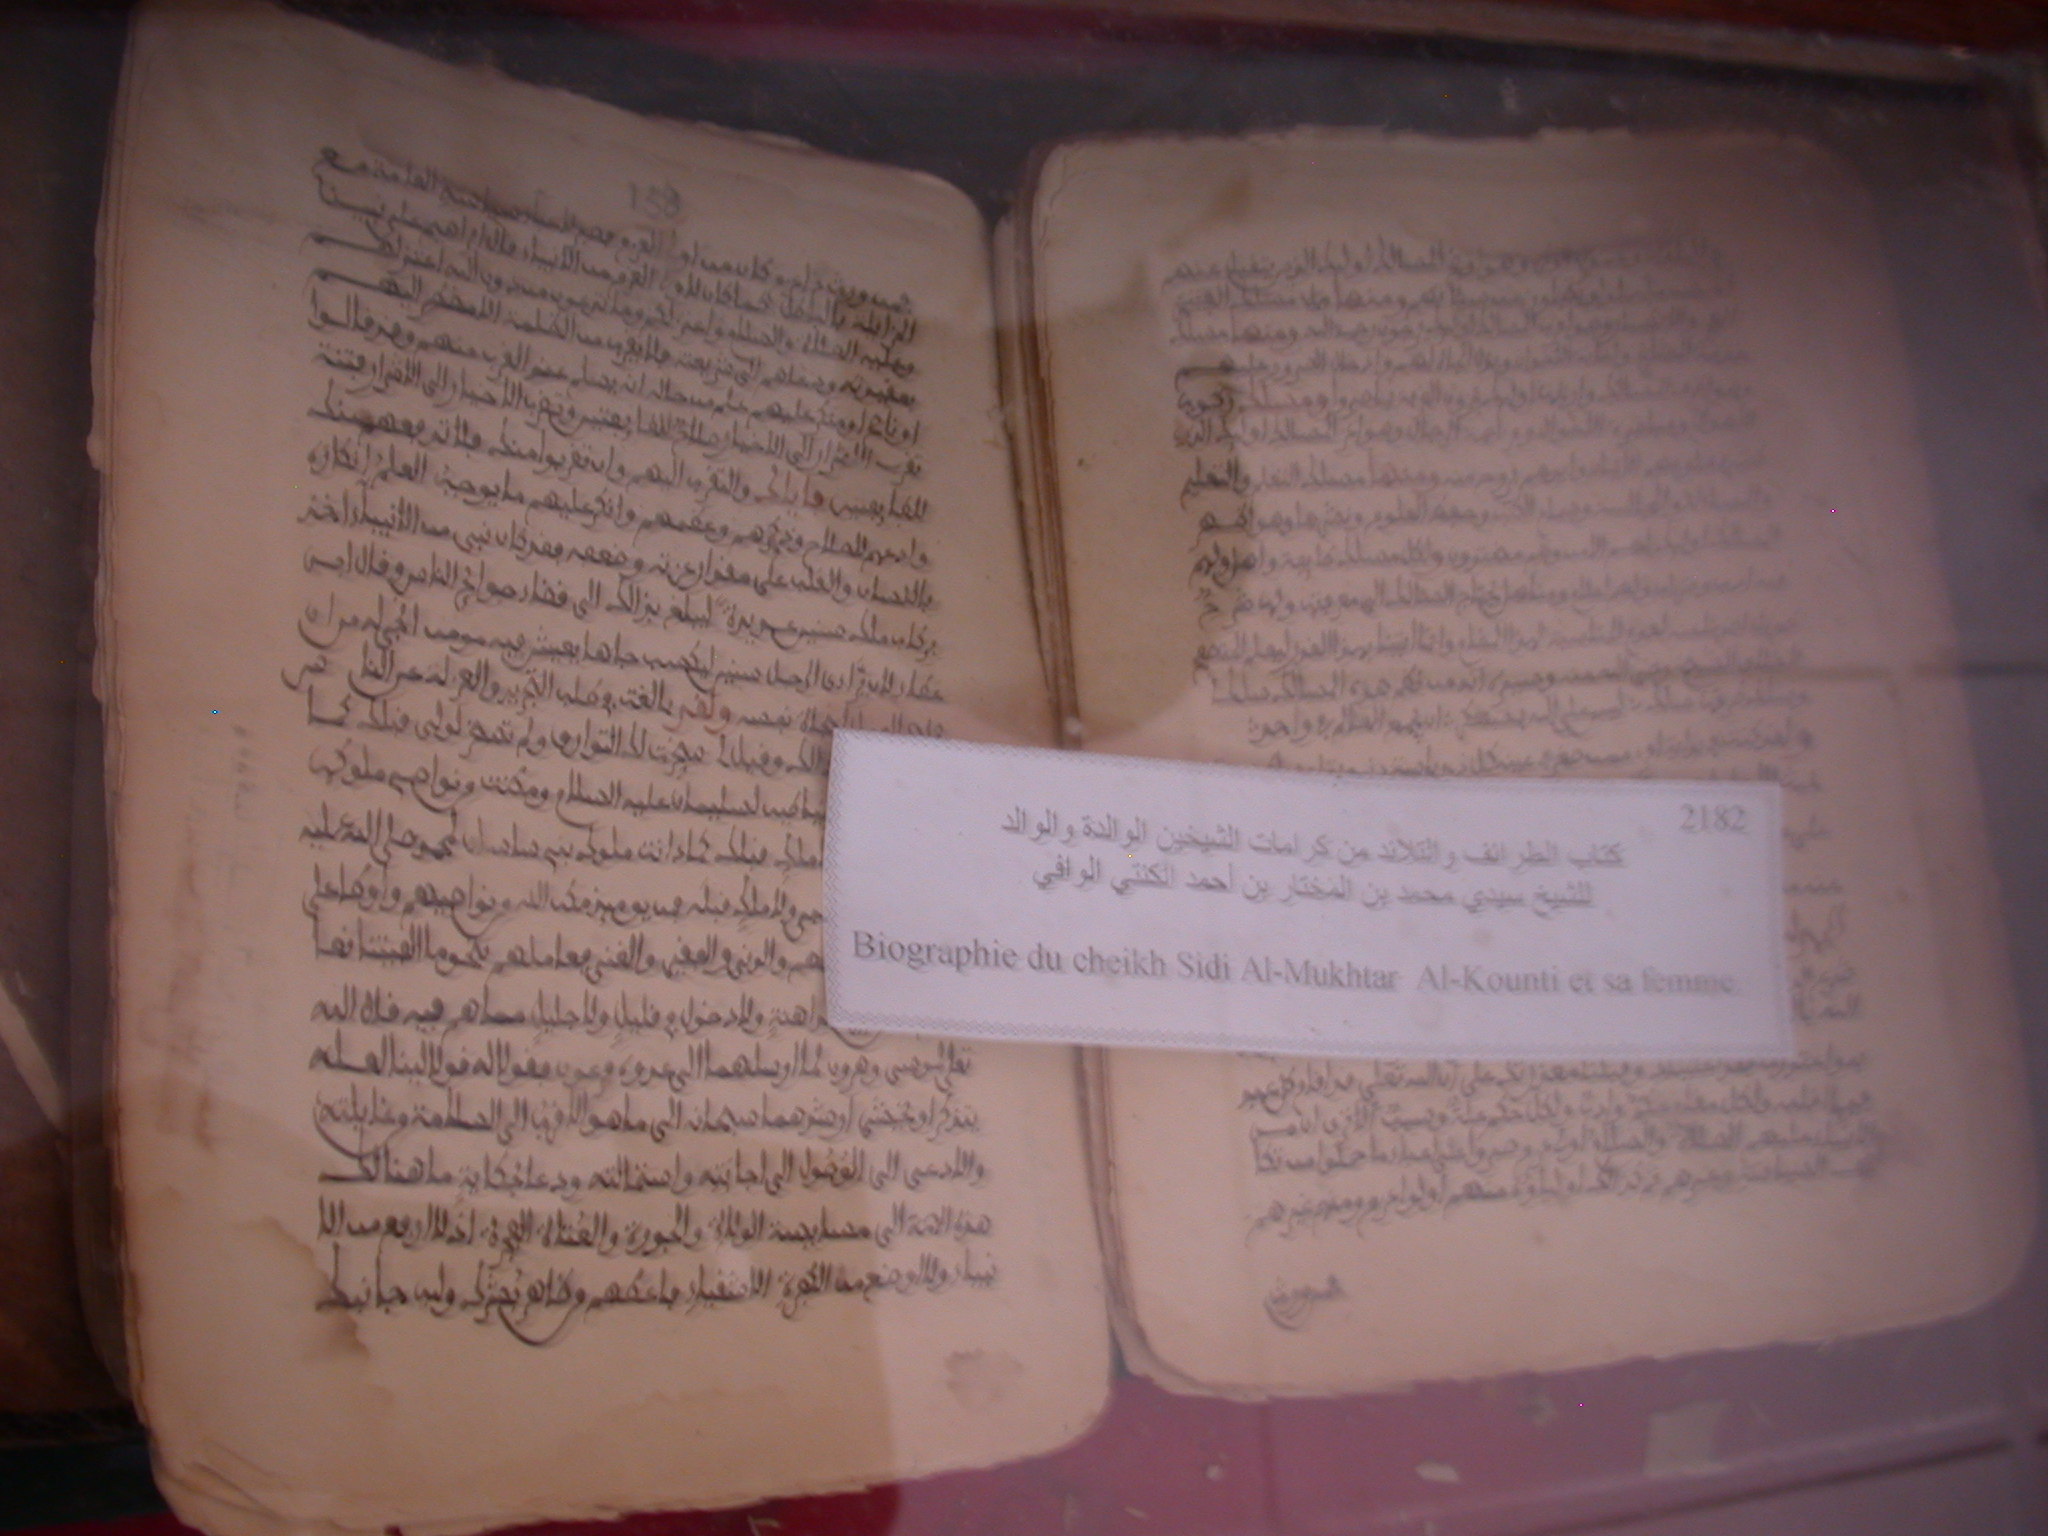 Manuscript, Biography of Sheik Sidi Al-Mukhtar Al-Kounti and His Wife, Ahmed Baba Institute, Institut des Hautes Etudes et de Recherches Islamiques, Timbuktu, Mali